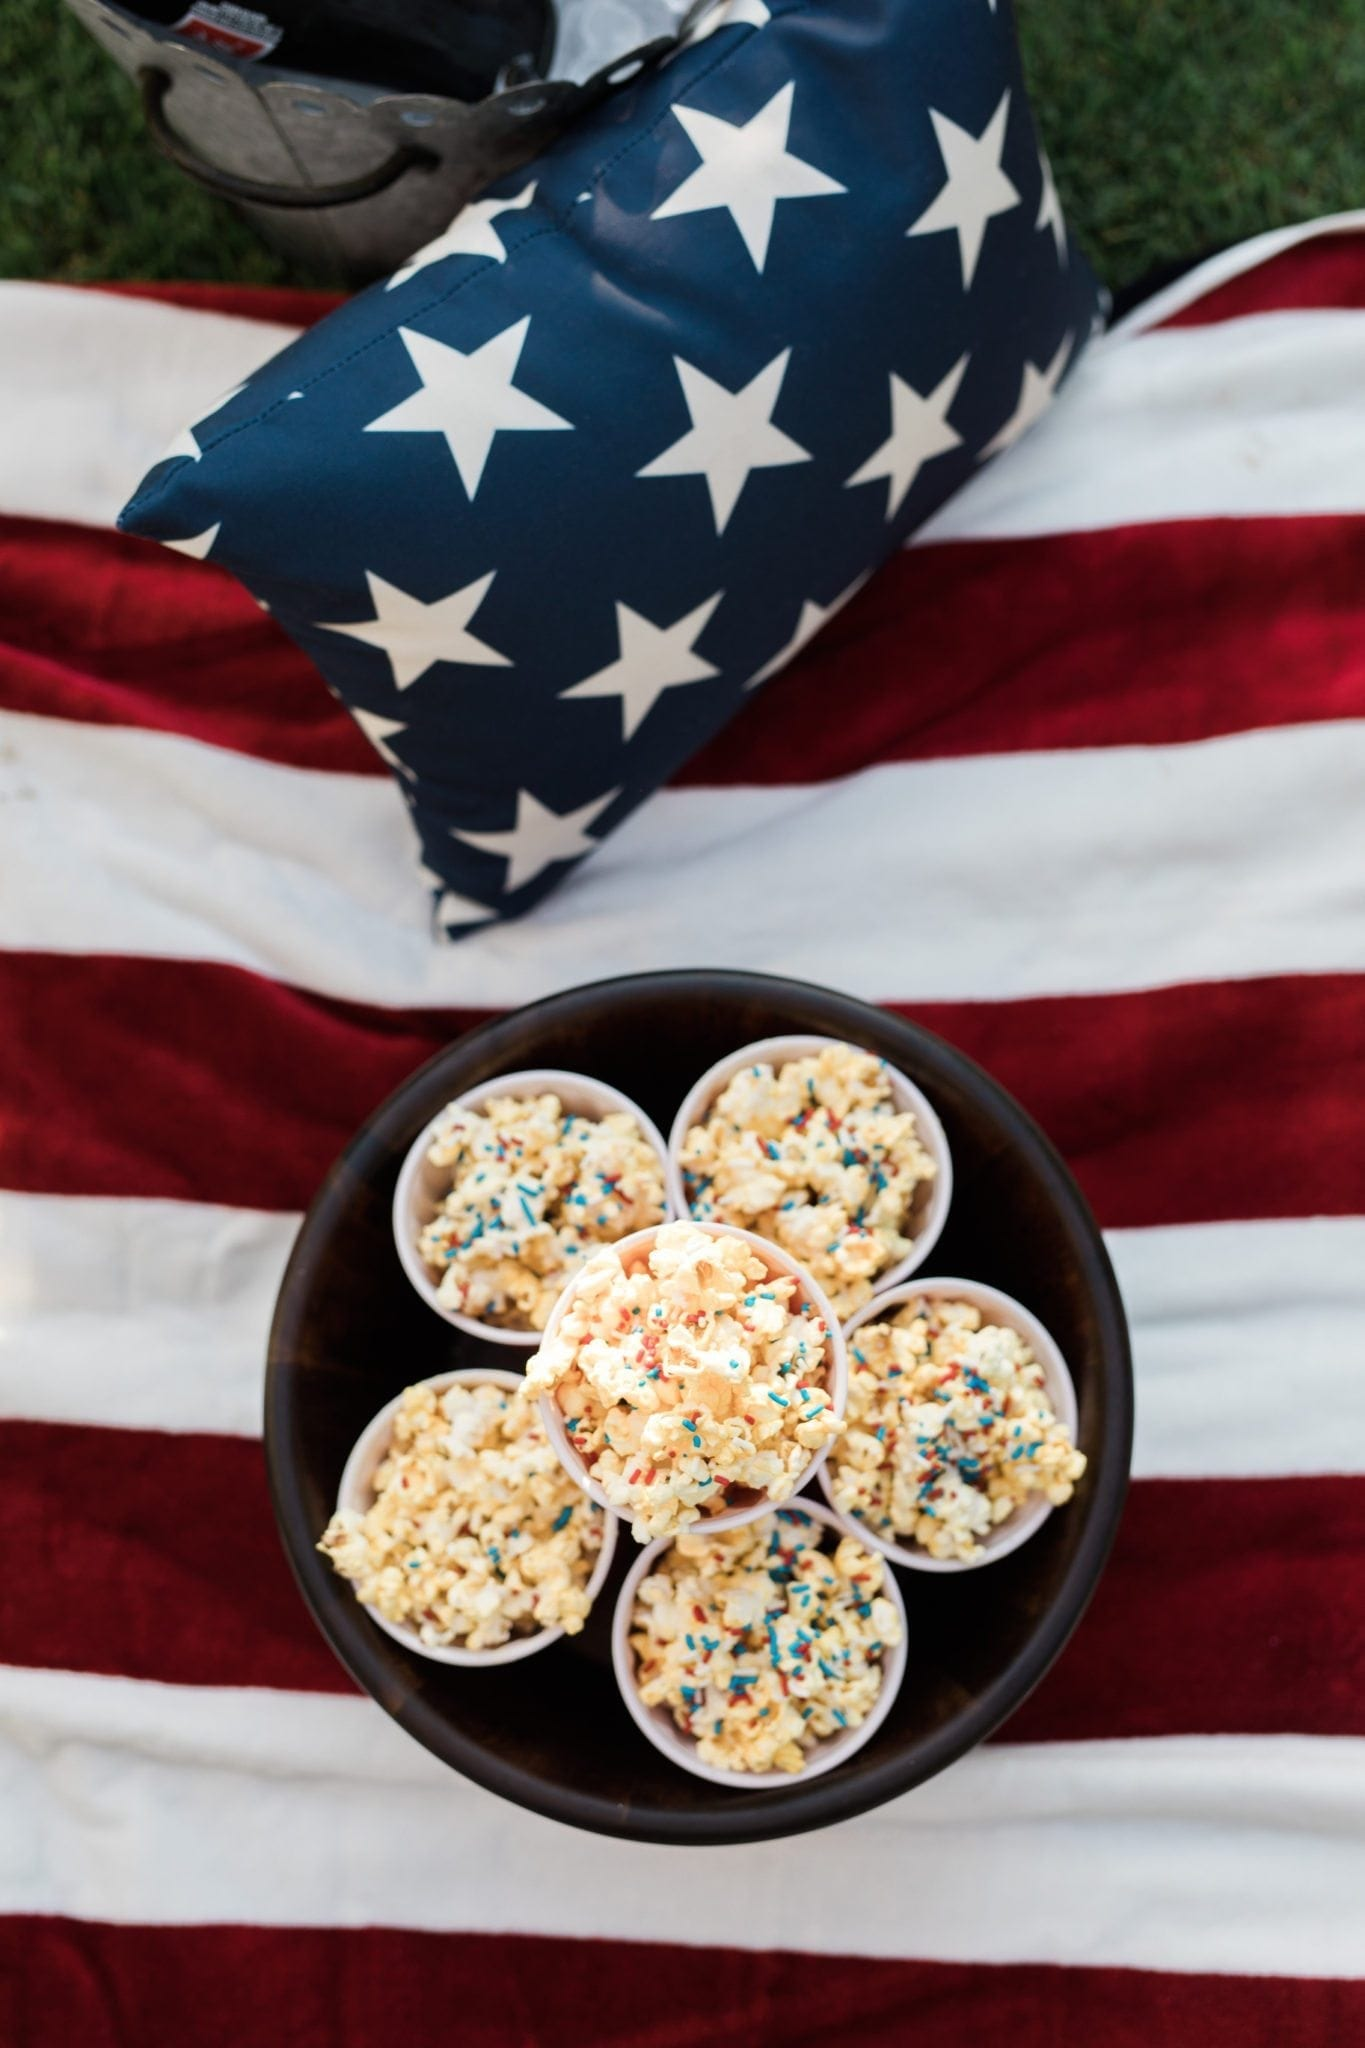 Easy to make popcorn with sprinkles. Fun party popcorn treat!